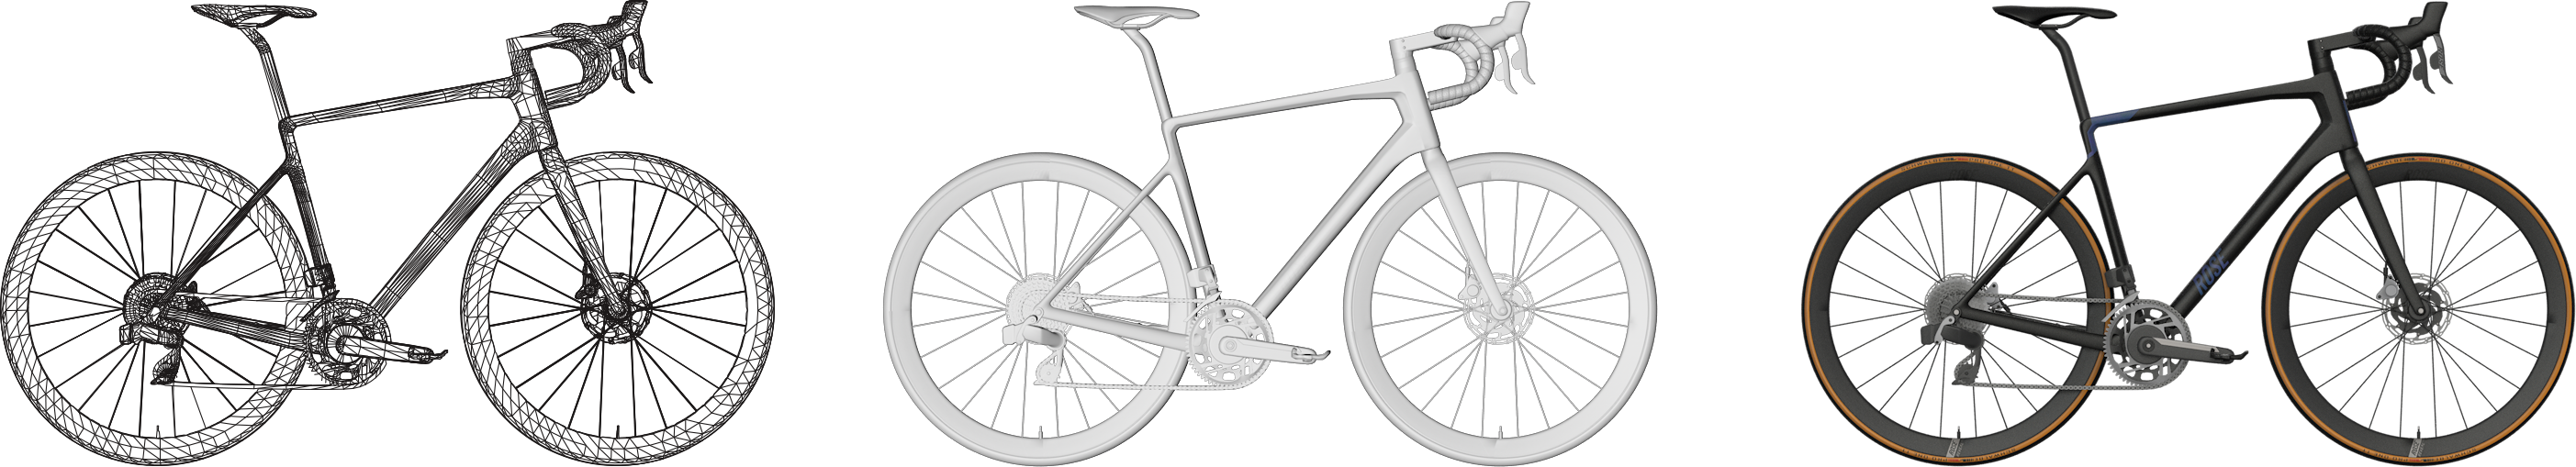 Asset creation process, displayed by bike 3D model creation